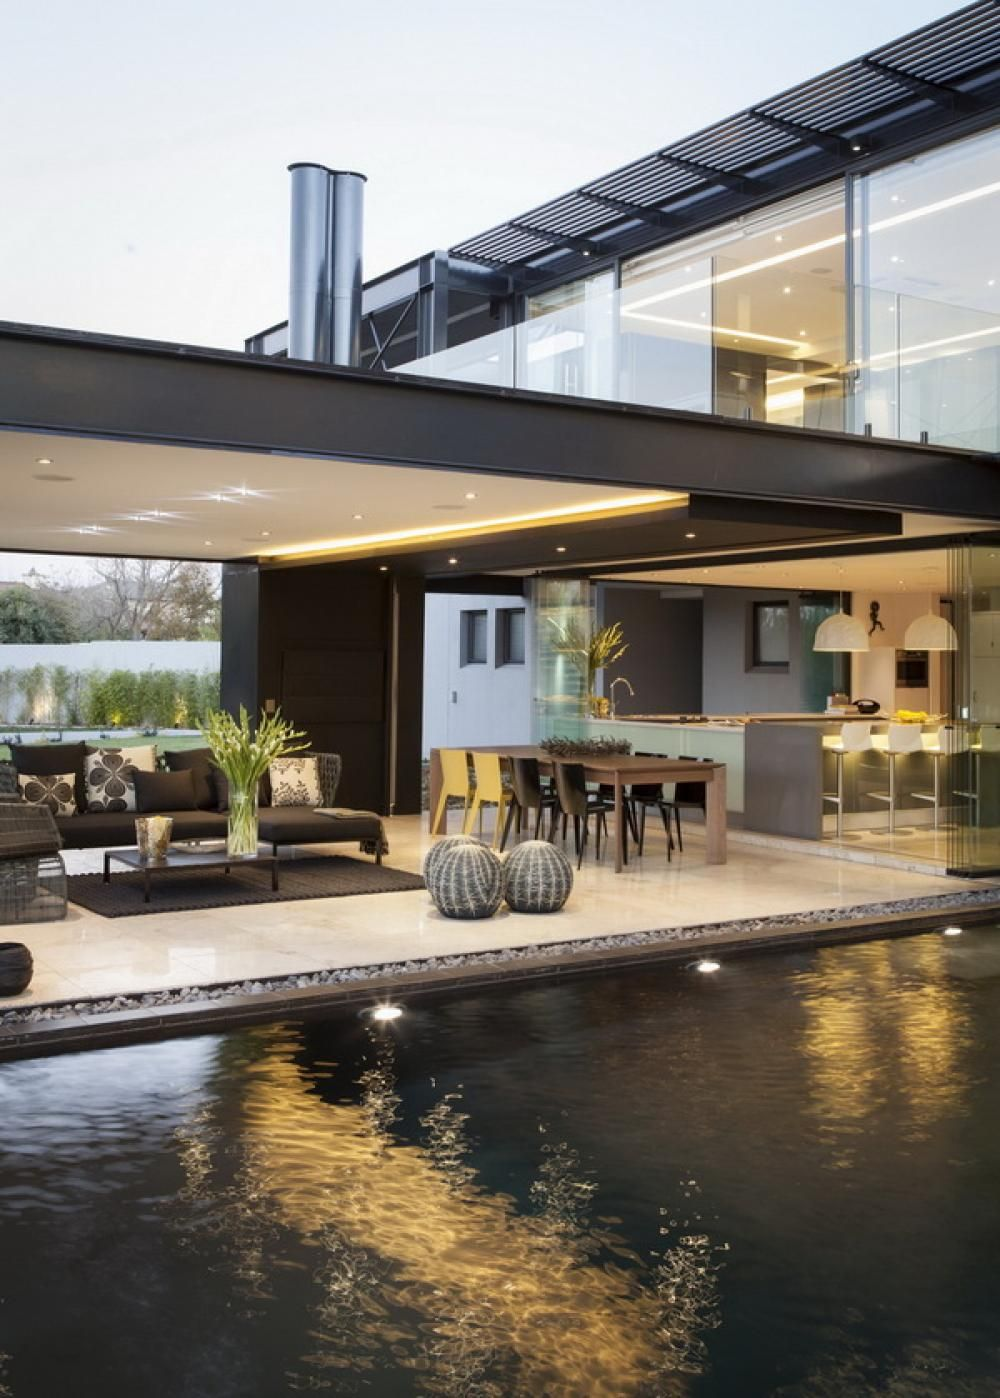 Captivating Fancy And Elegant Outdoor Room Home Design  For Living Area And Dining Area Next To The Wide Pool